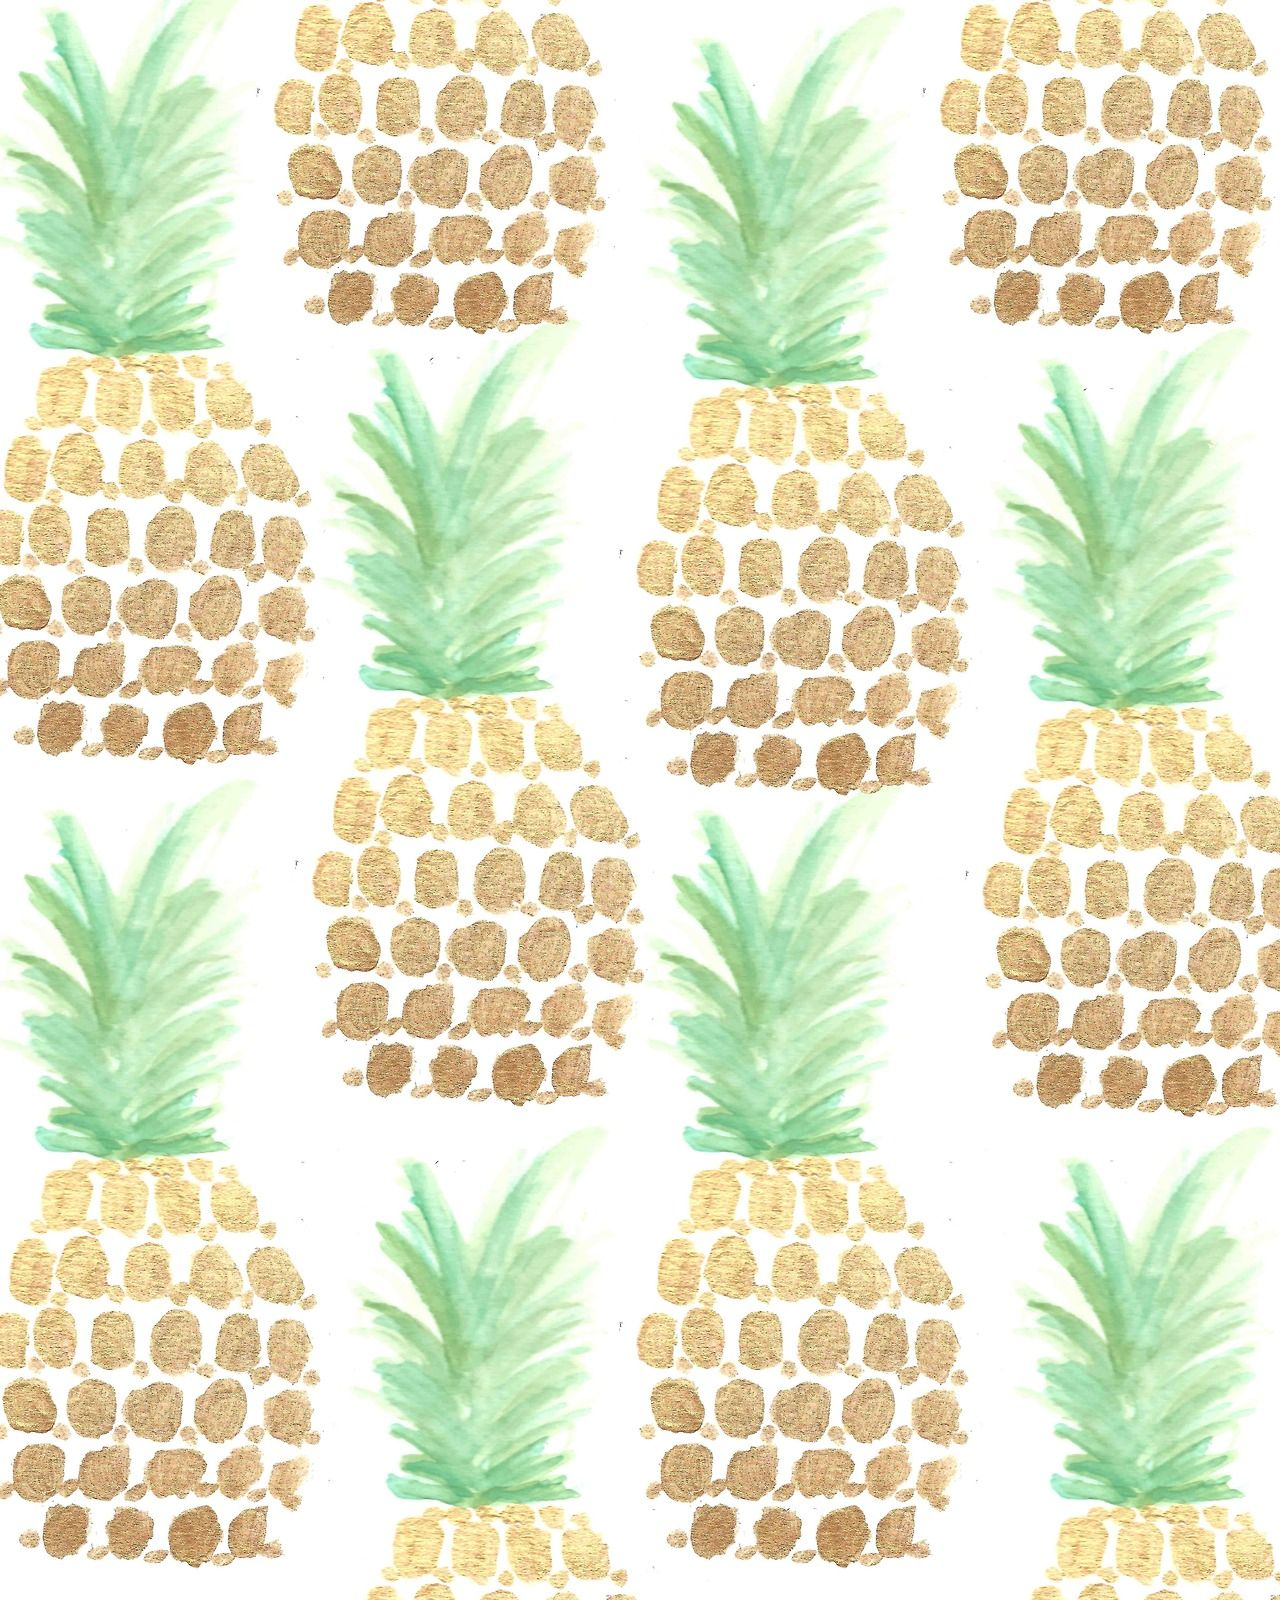 Trend alert pineapples etc. Boho clipart pineapple